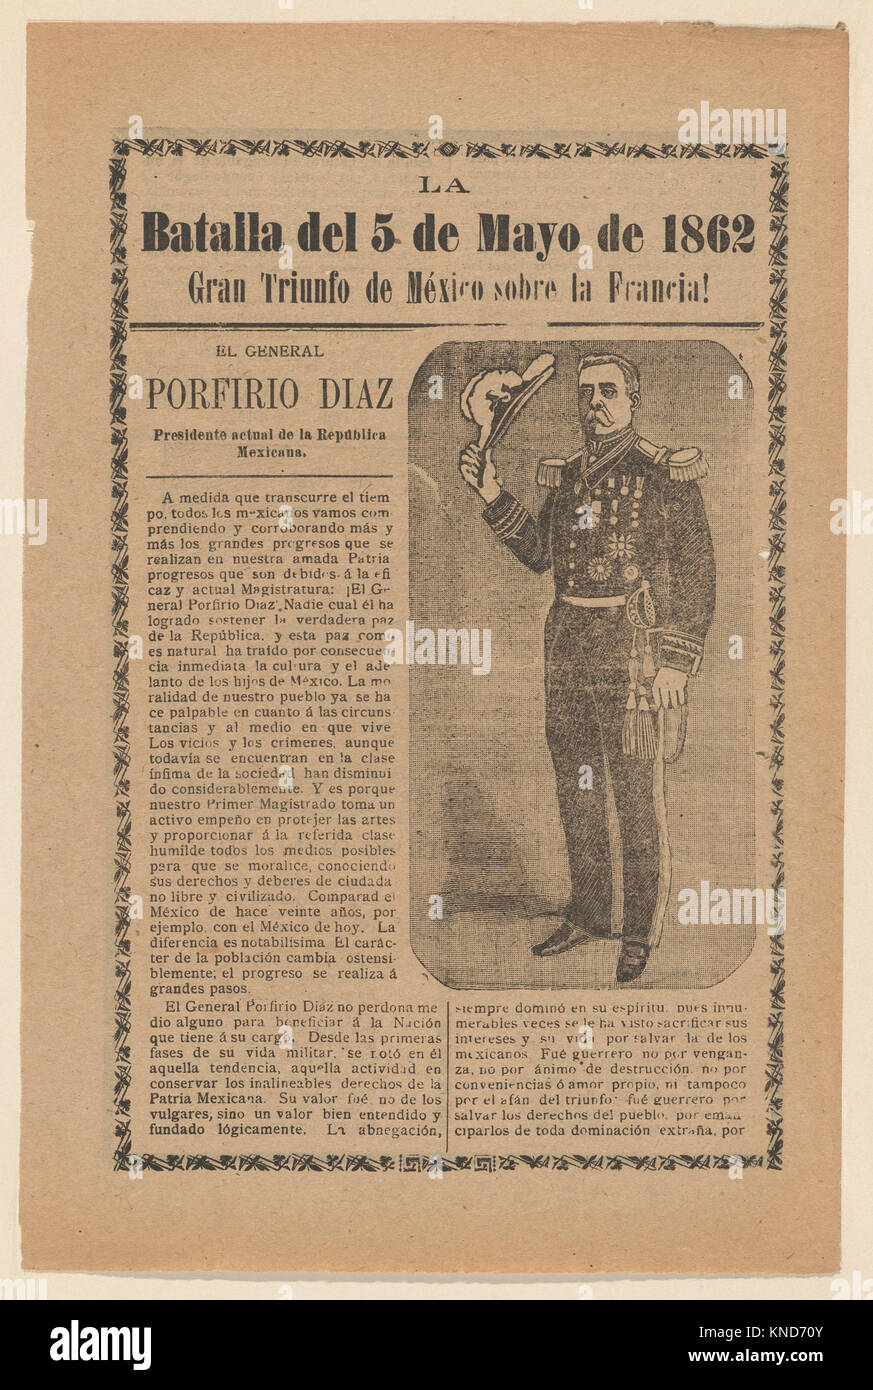 Broadside relating to a news story about the Mexican victory over the French army on May 5, 1862, General Porfirio Stock Photo